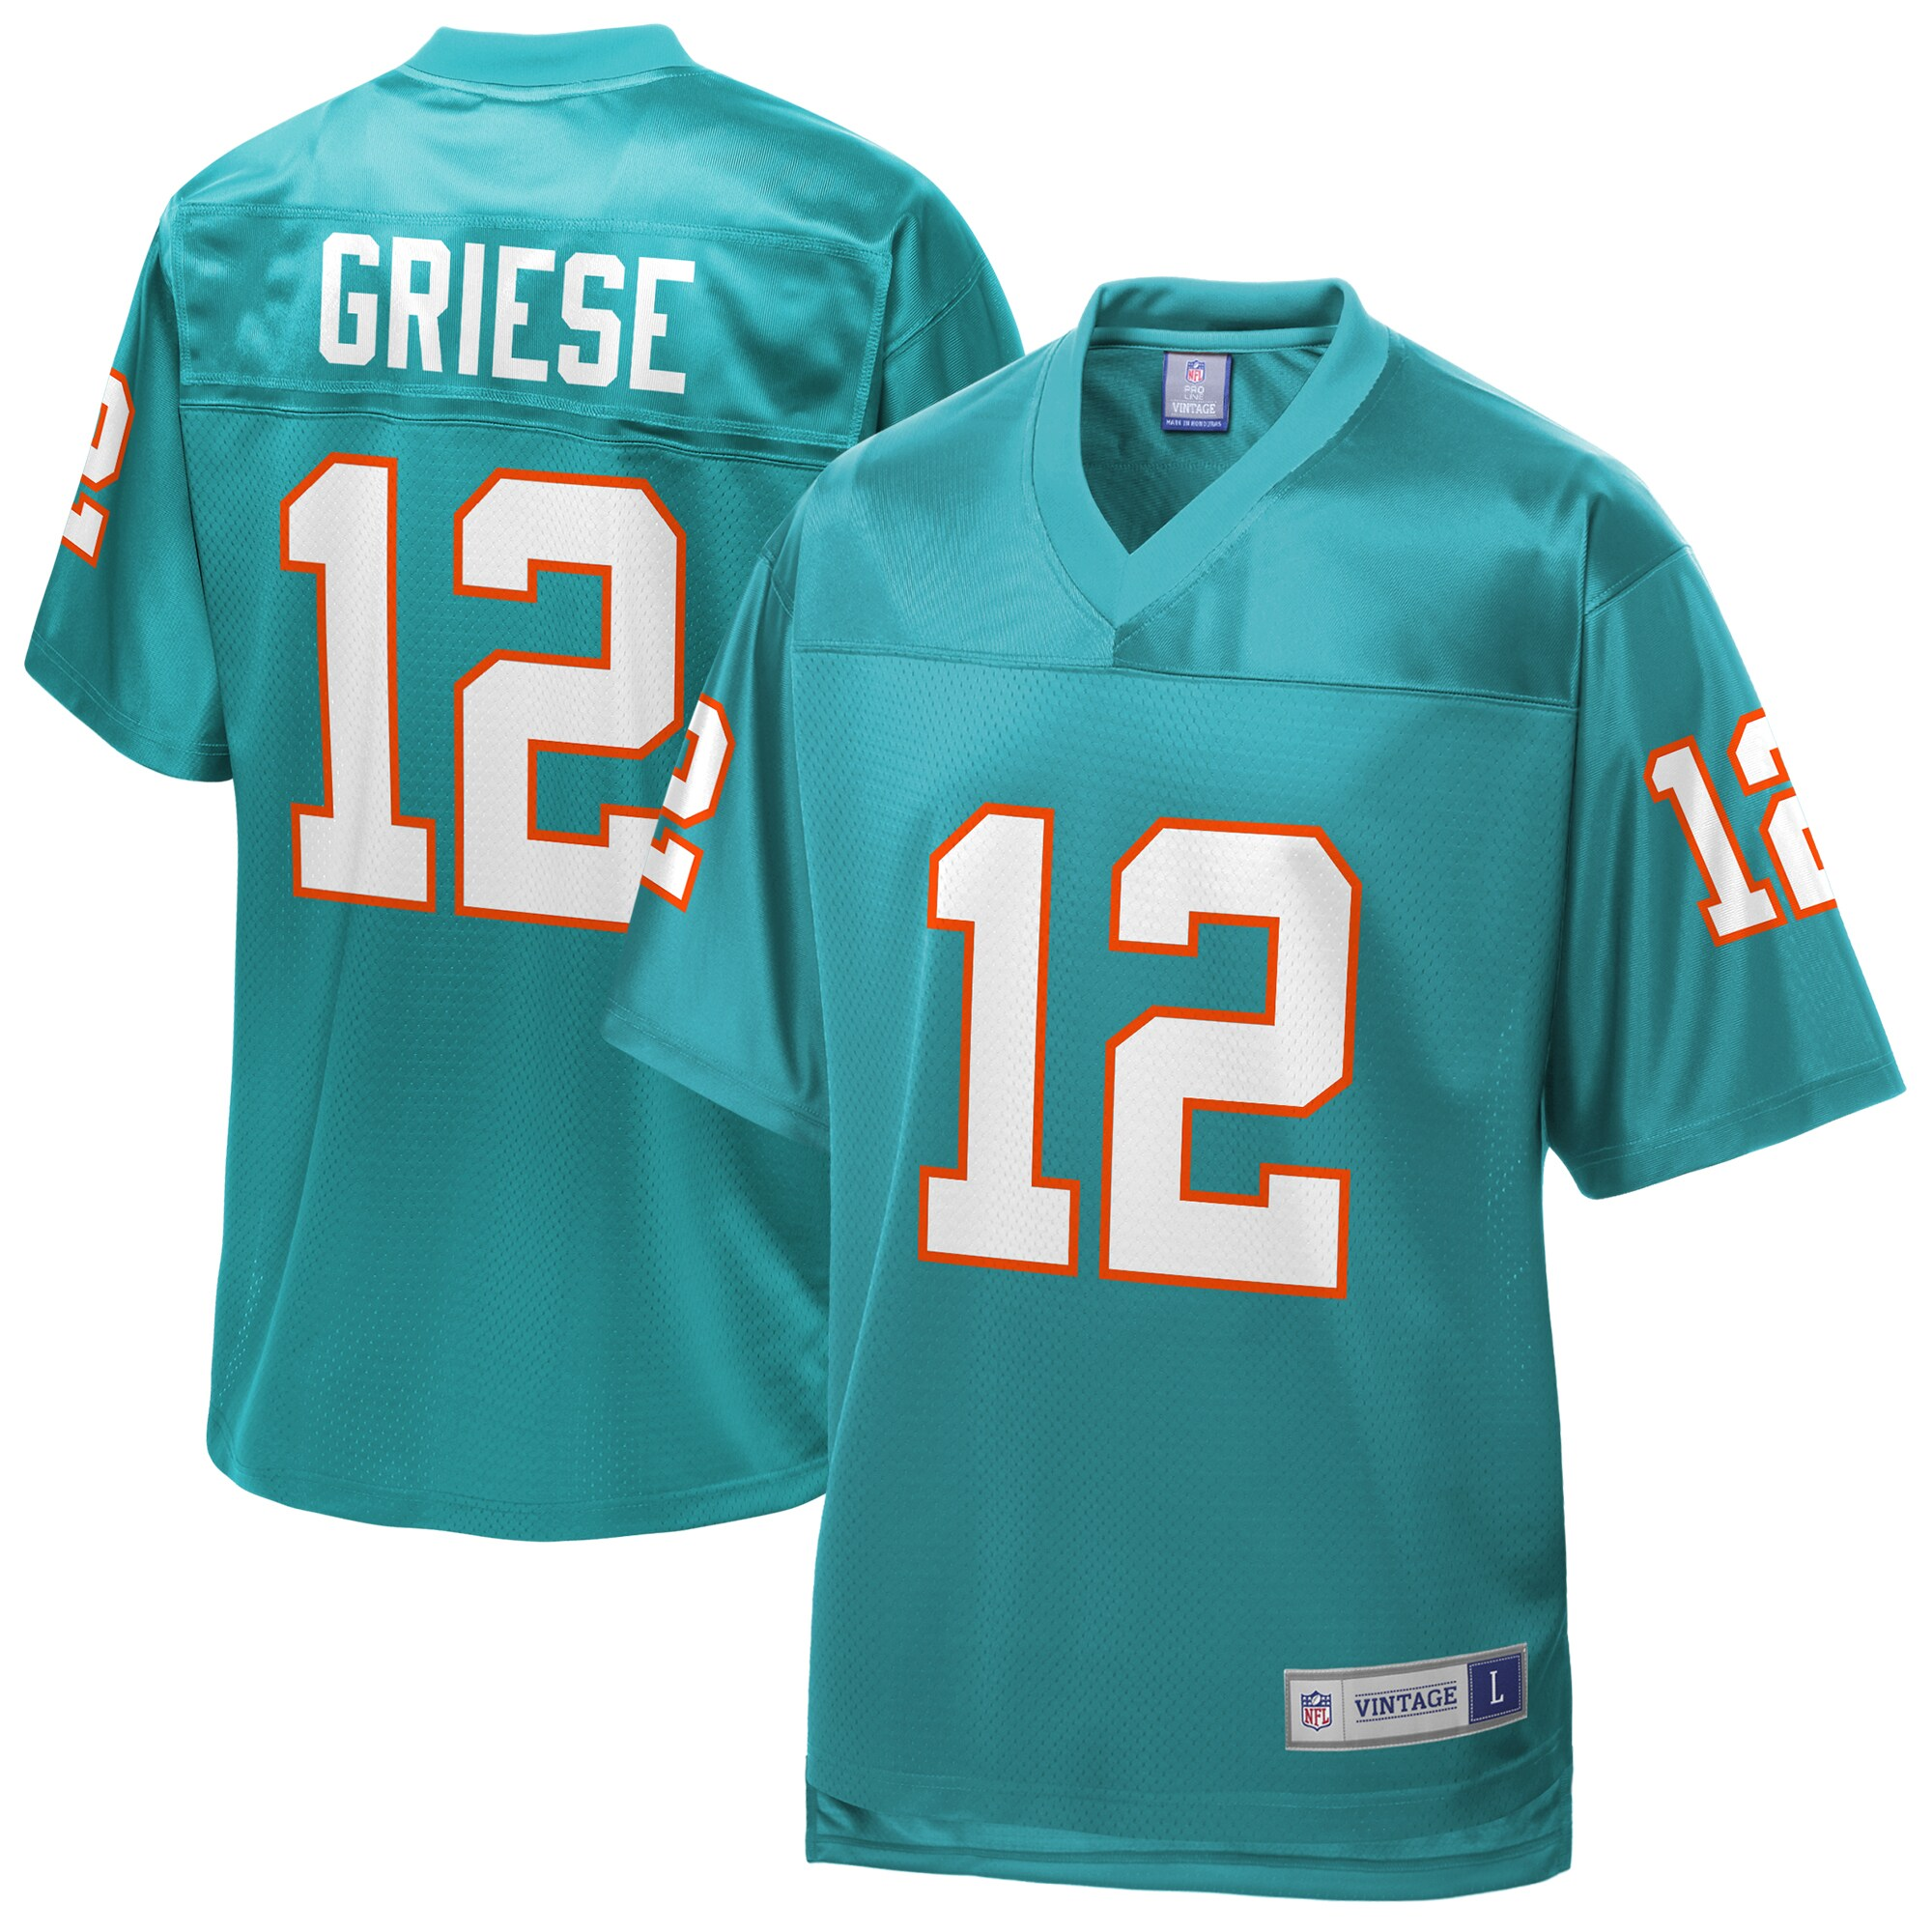 Bob Griese Miami Dolphins NFL Pro Line Retired Player Replica Jersey - Aqua